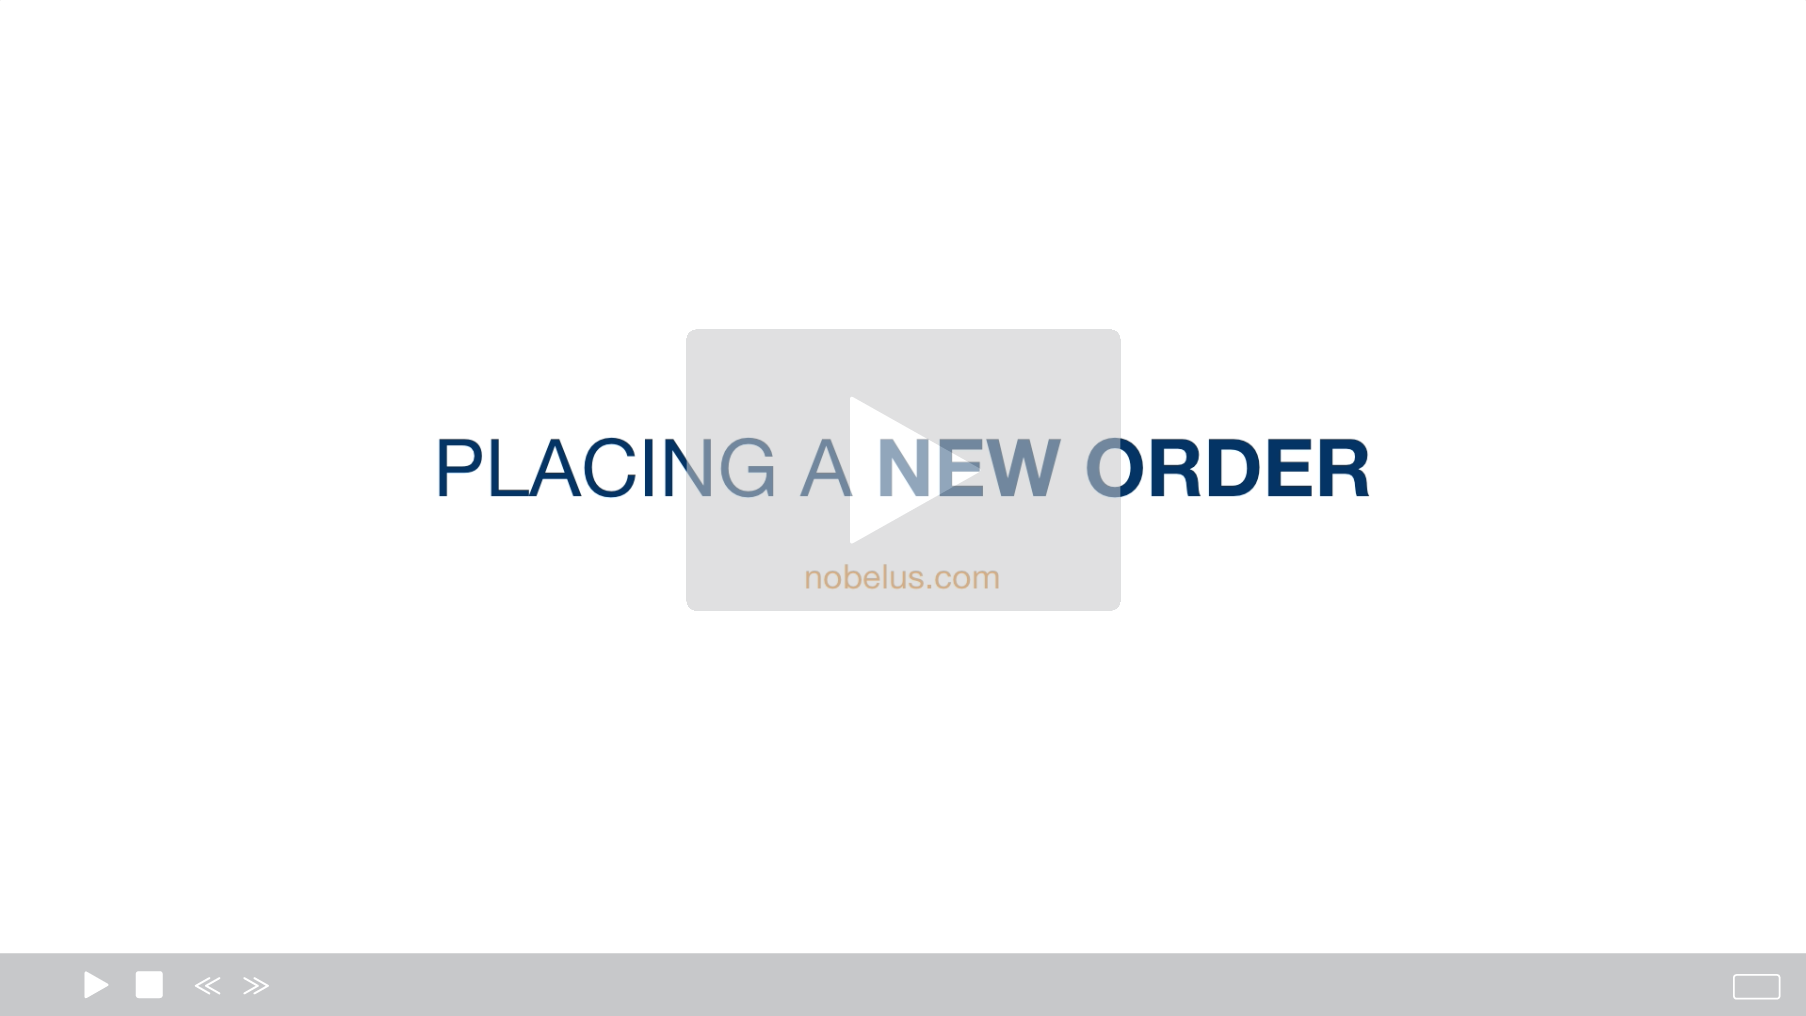 Placing A New Order